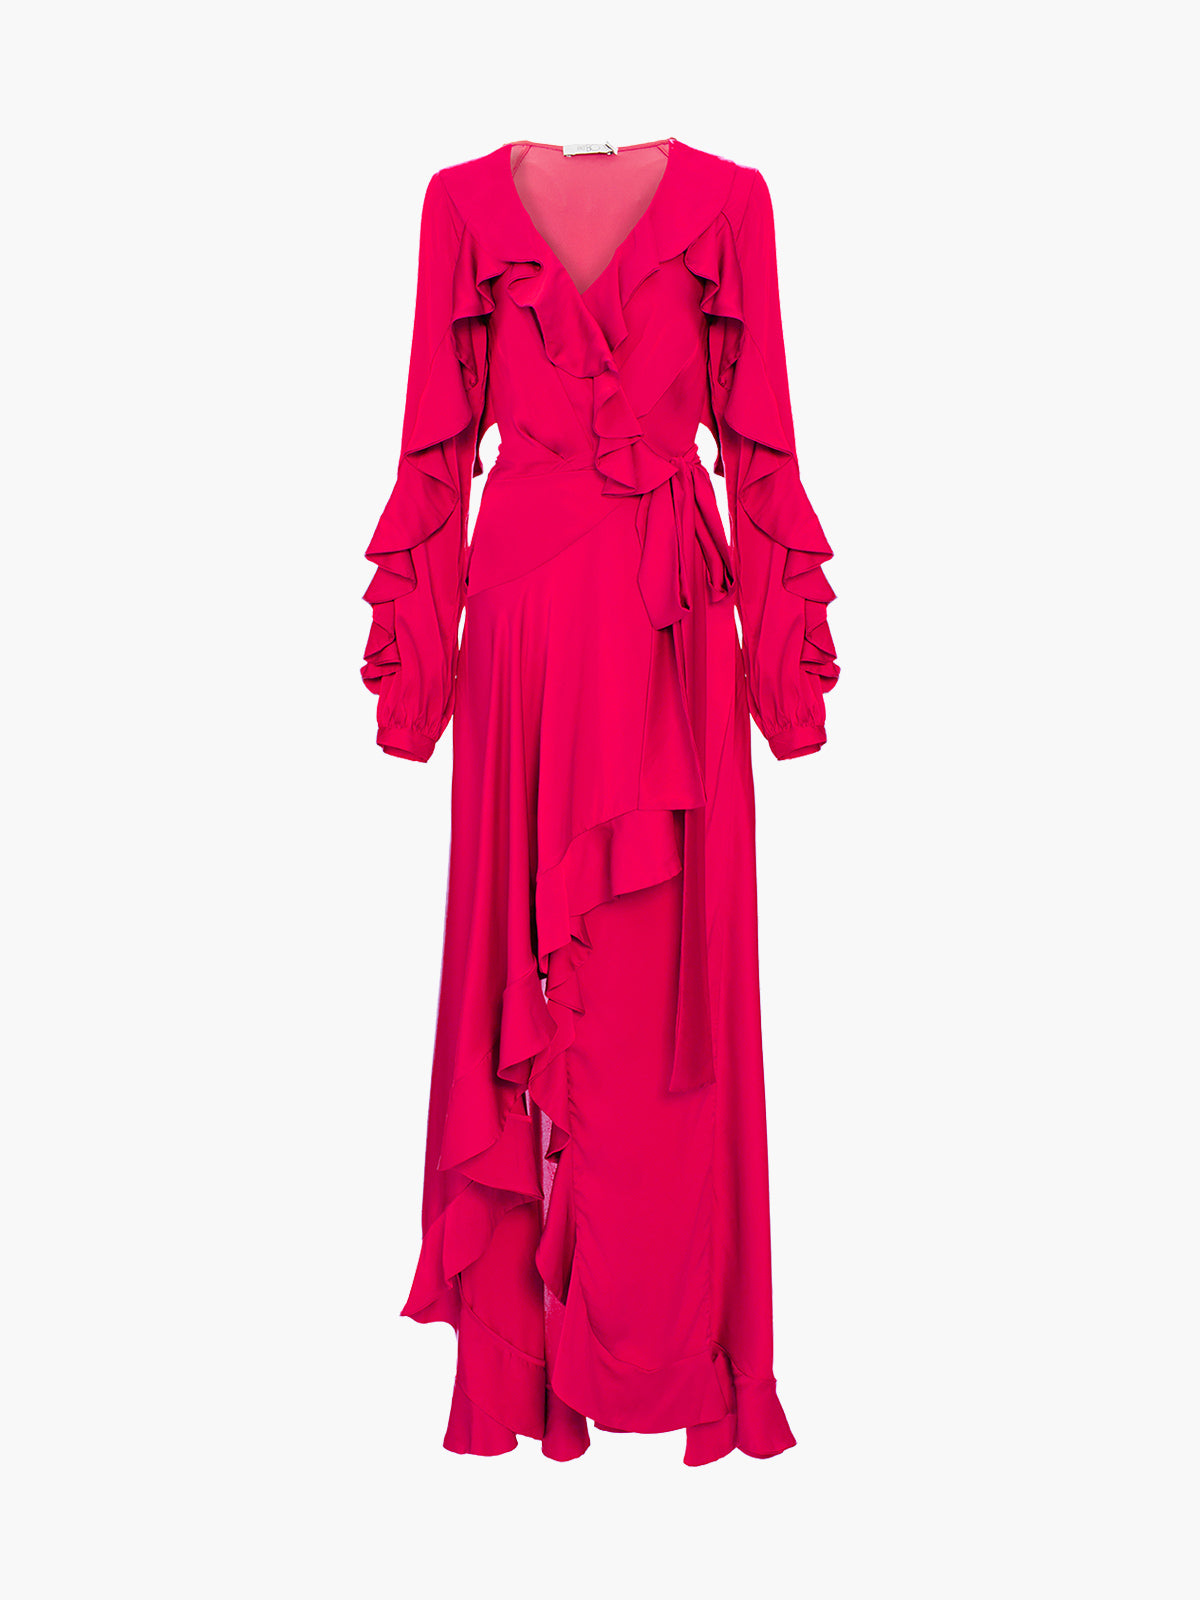 Ruffle Sleeve Maxi Dress | Hot Pink Ruffle Sleeve Maxi Dress | Hot Pink